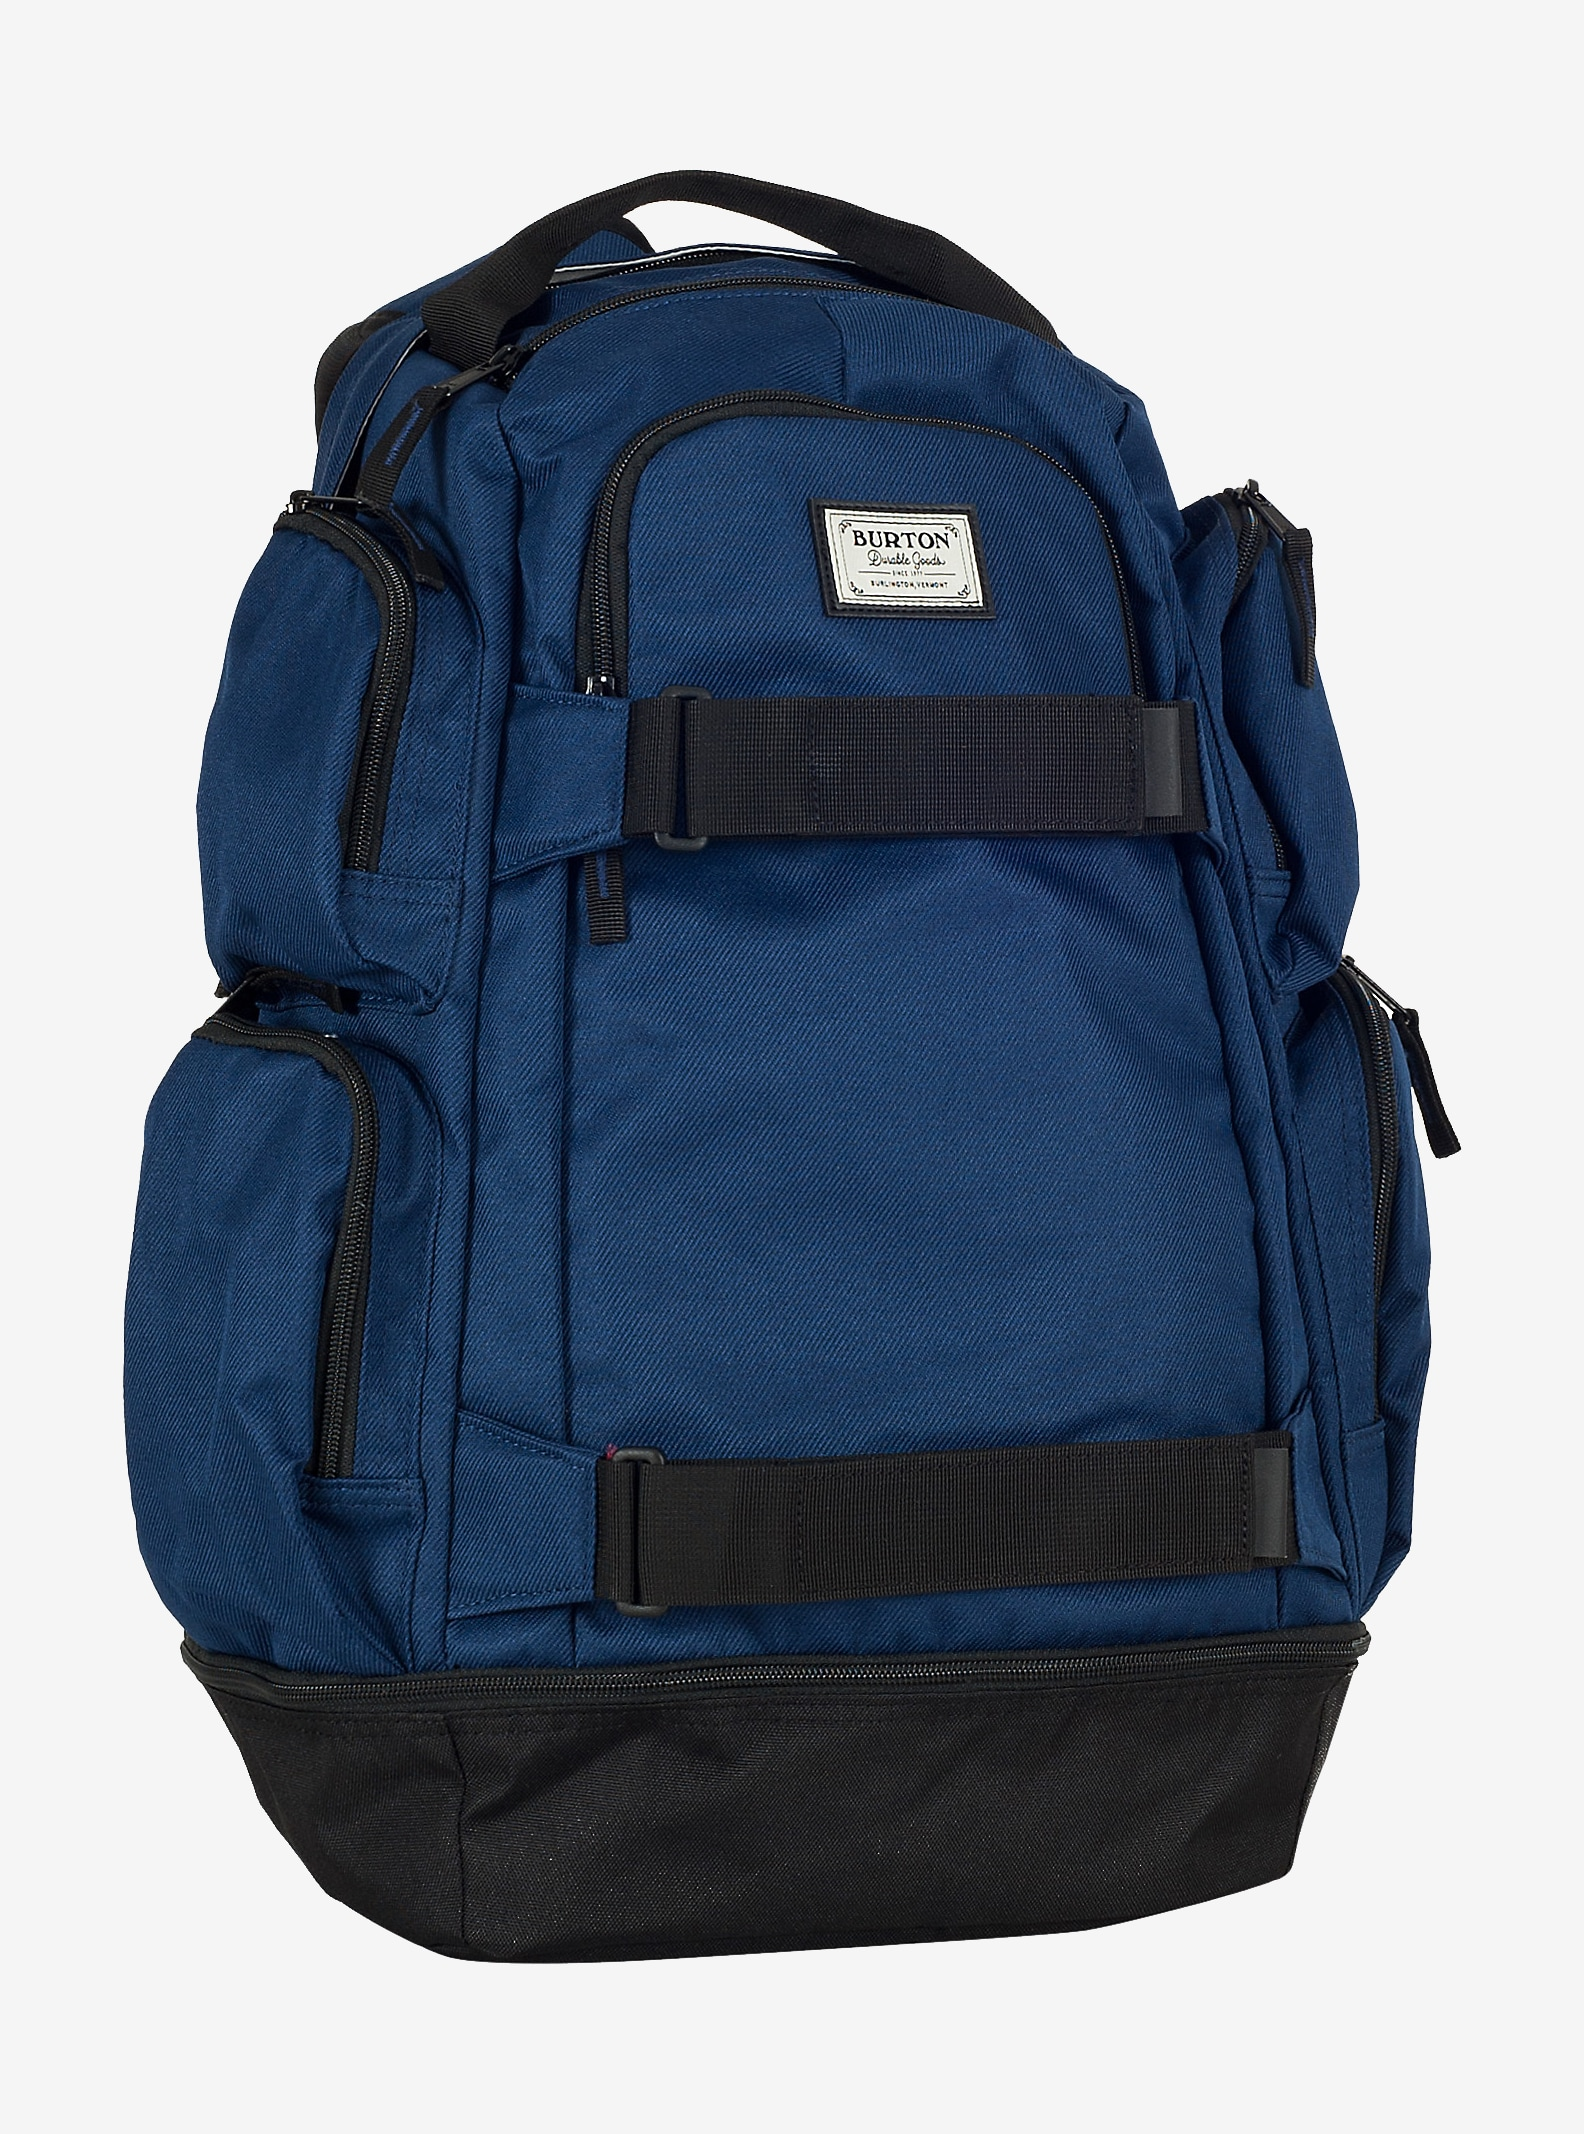 Burton Distortion Pack shown in Medieval Blue Twill